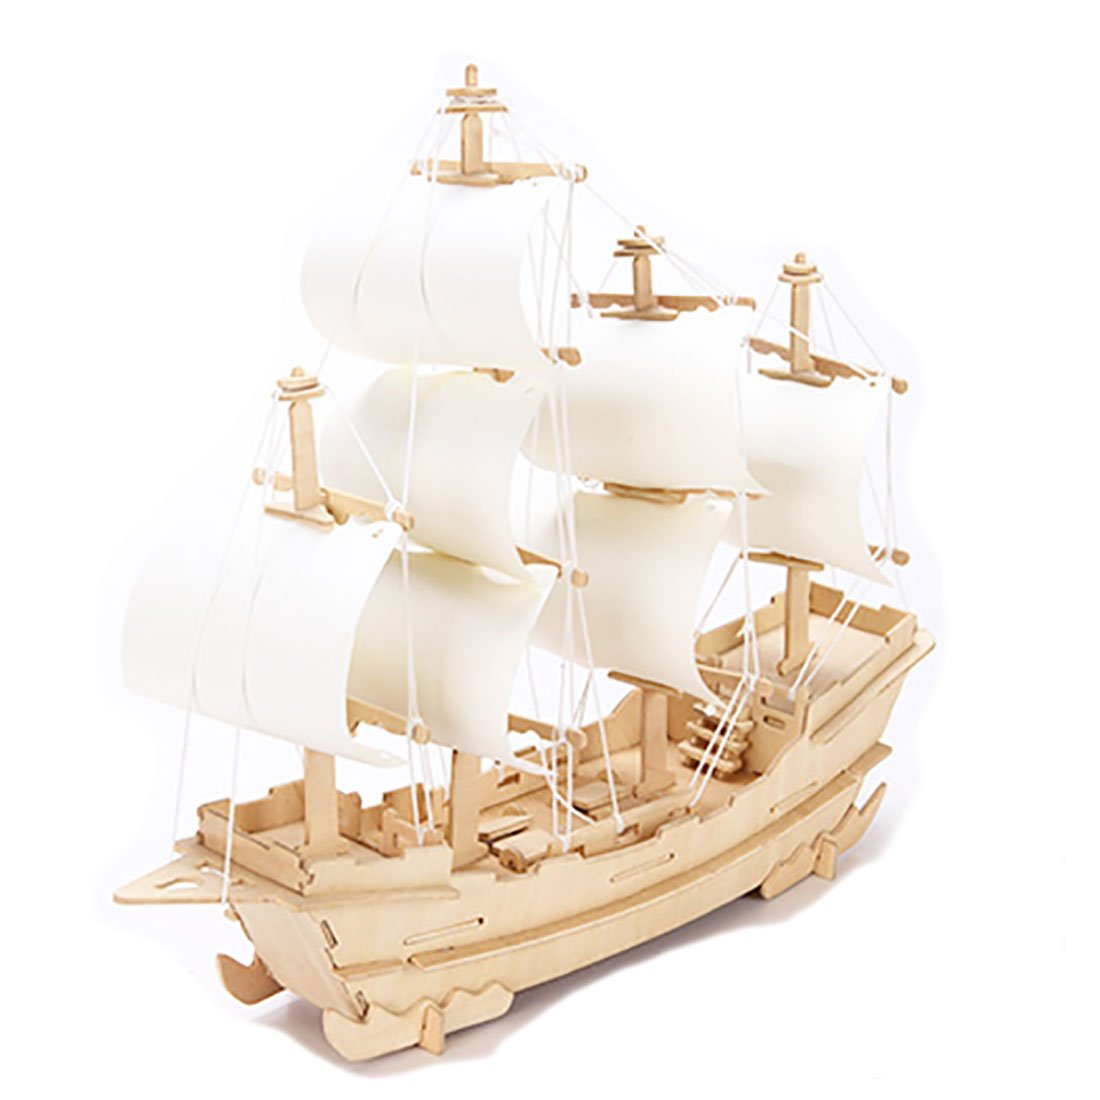 3d DIY Wooden Puzzle Toy or Hobby Decorative Merchant Ship Boat Model for Children by tonwins STONG